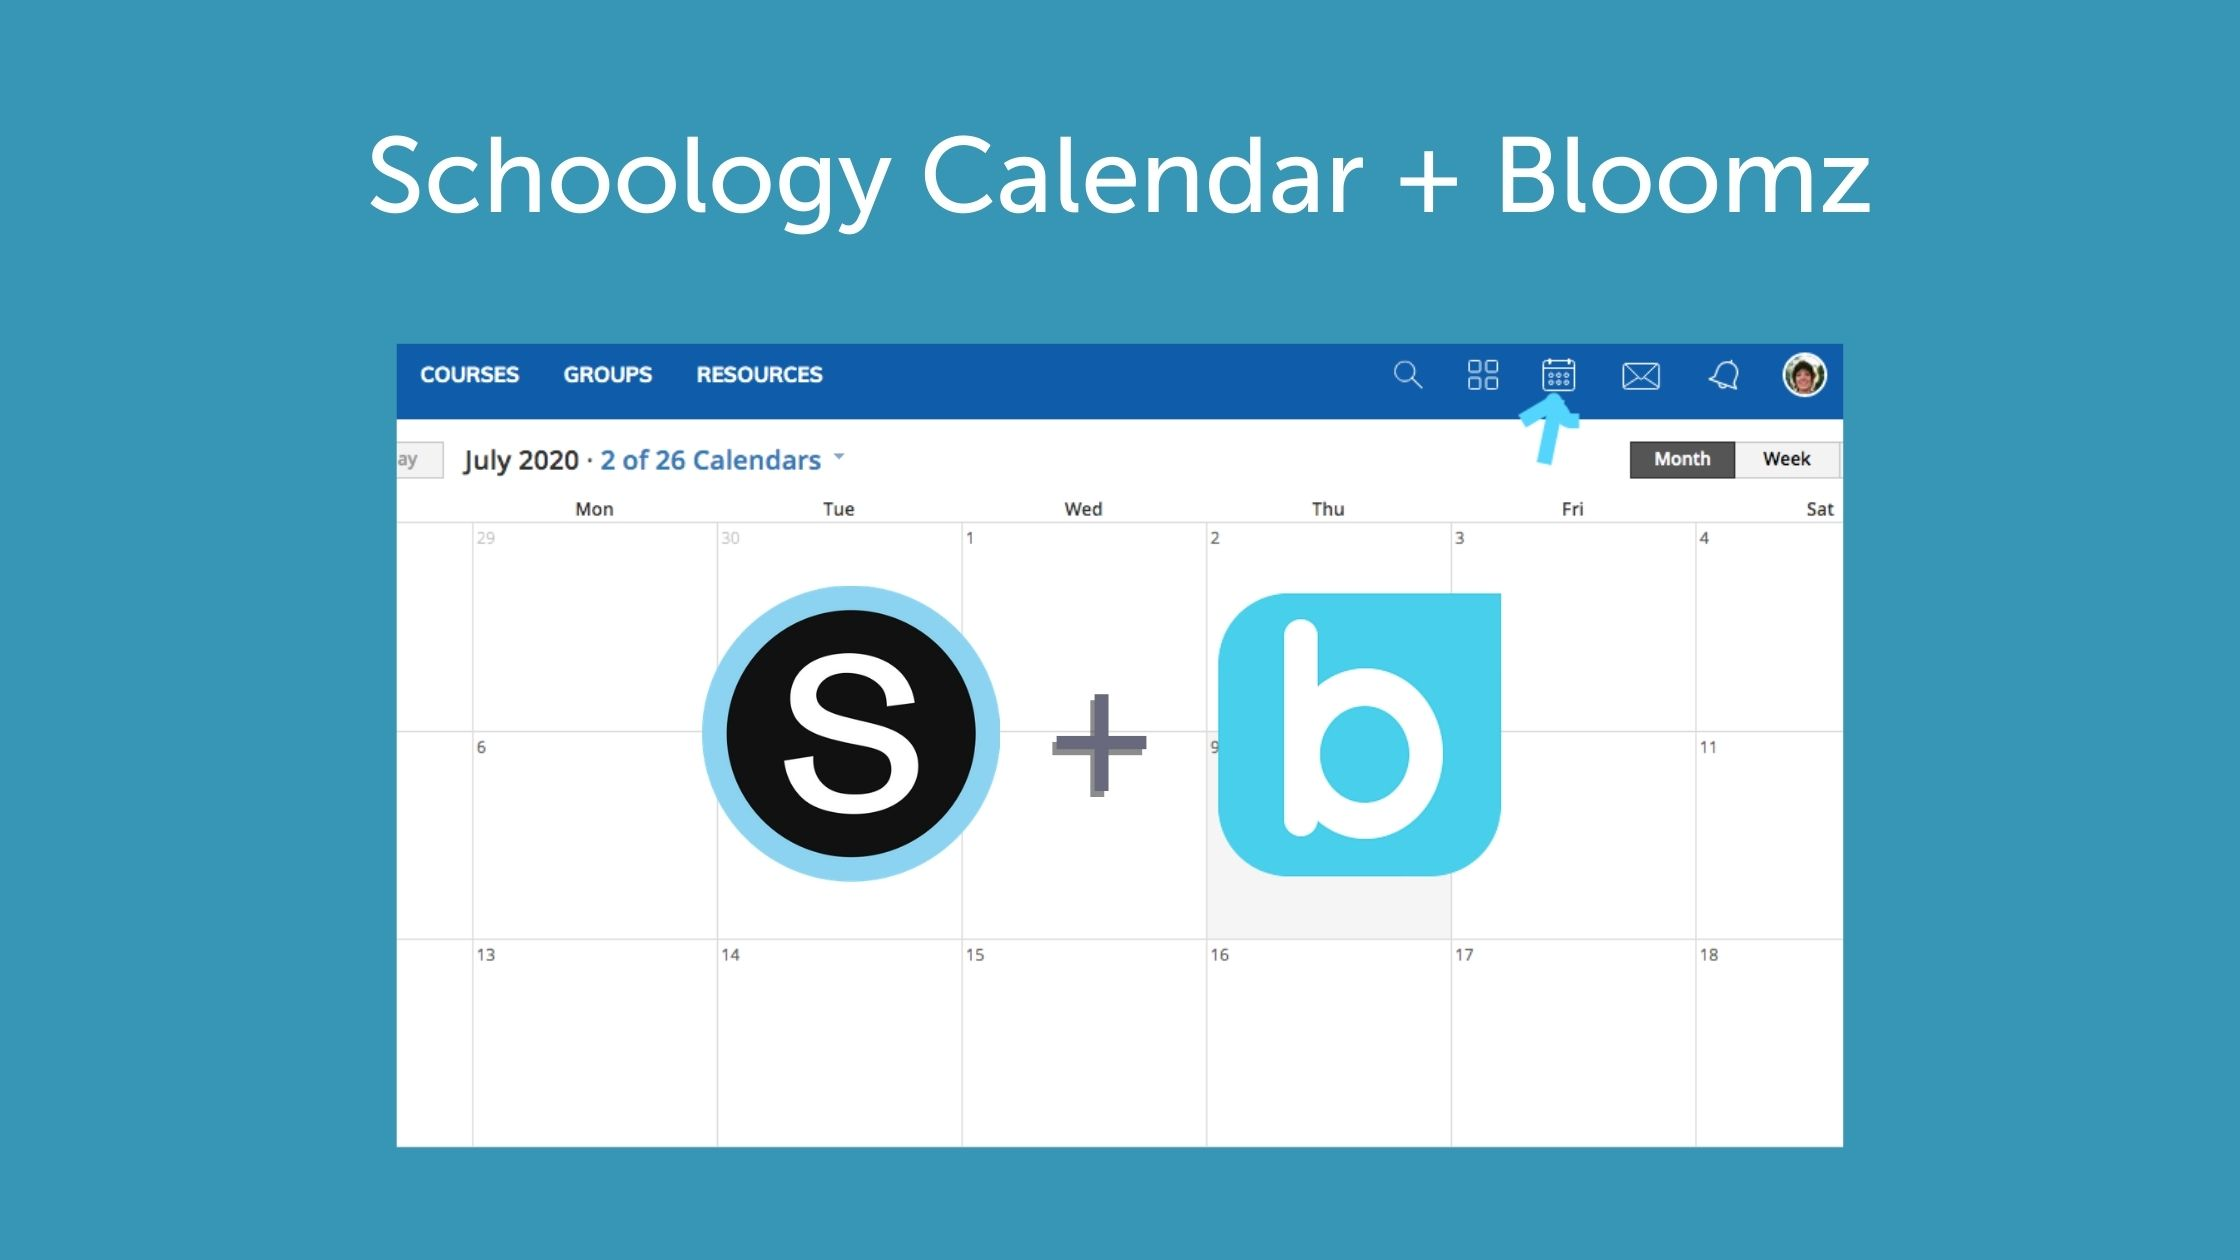 Syncing Your Schoology Calendar with Bloomz